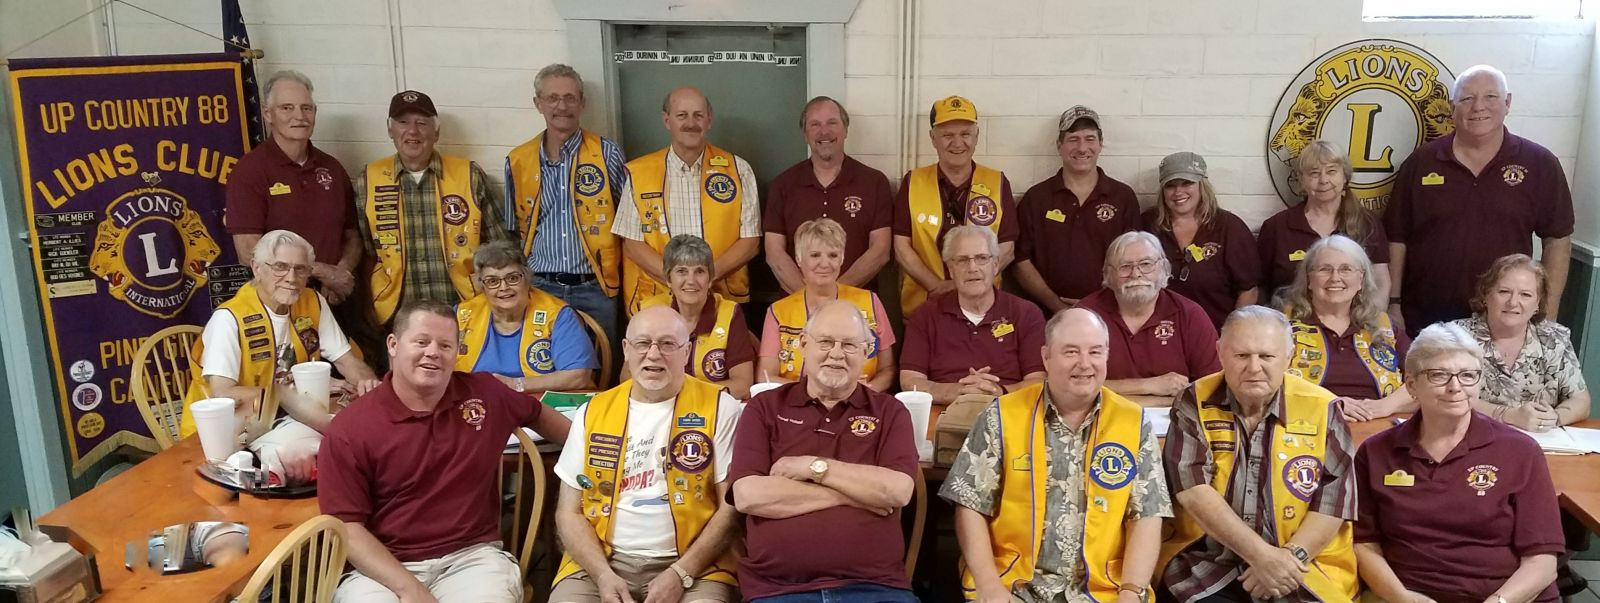 Up Country 88 Lions Members